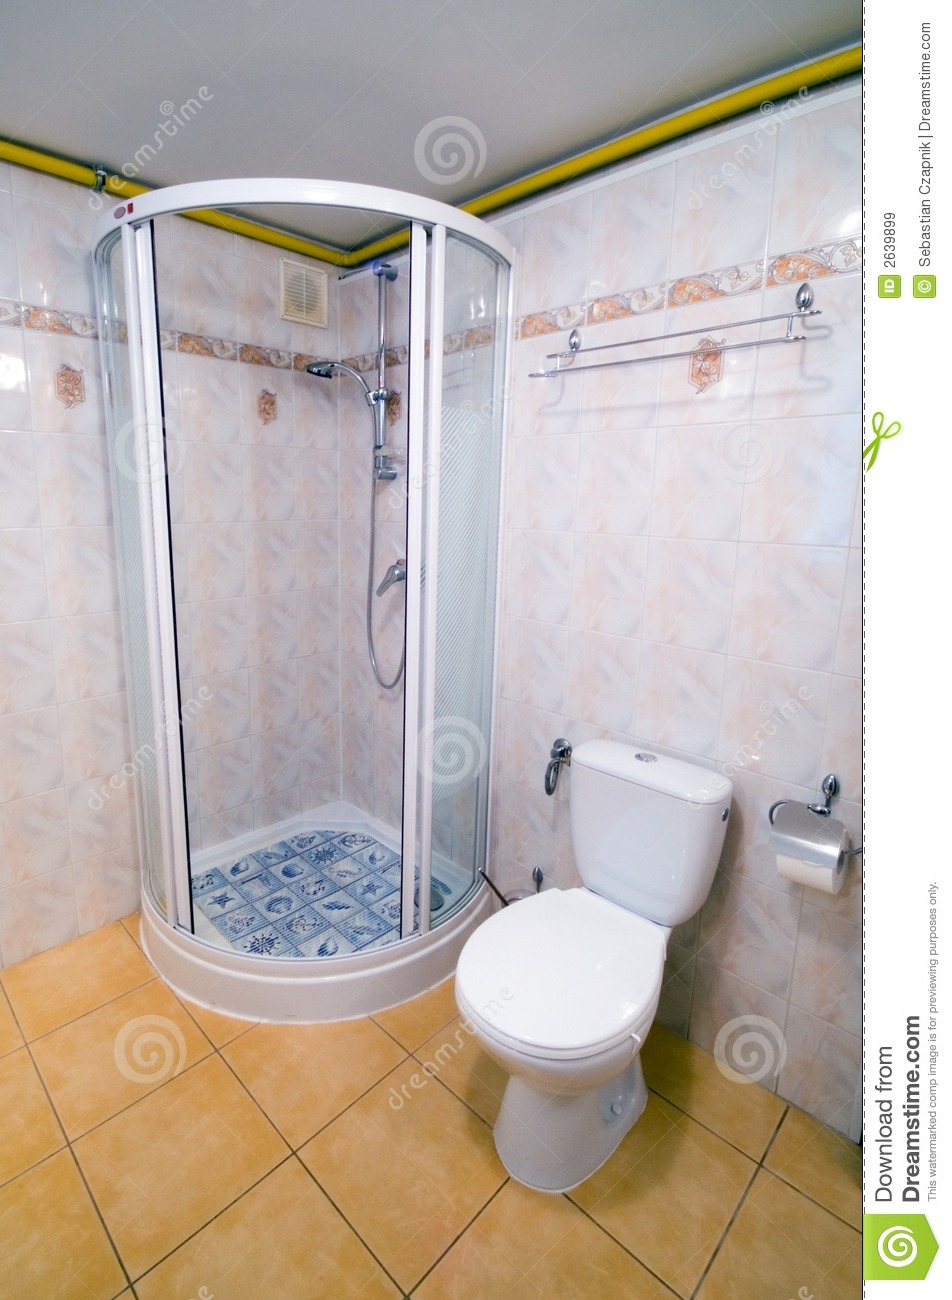 Bathroom Shower Cabin Royalty Free Stock Images Image